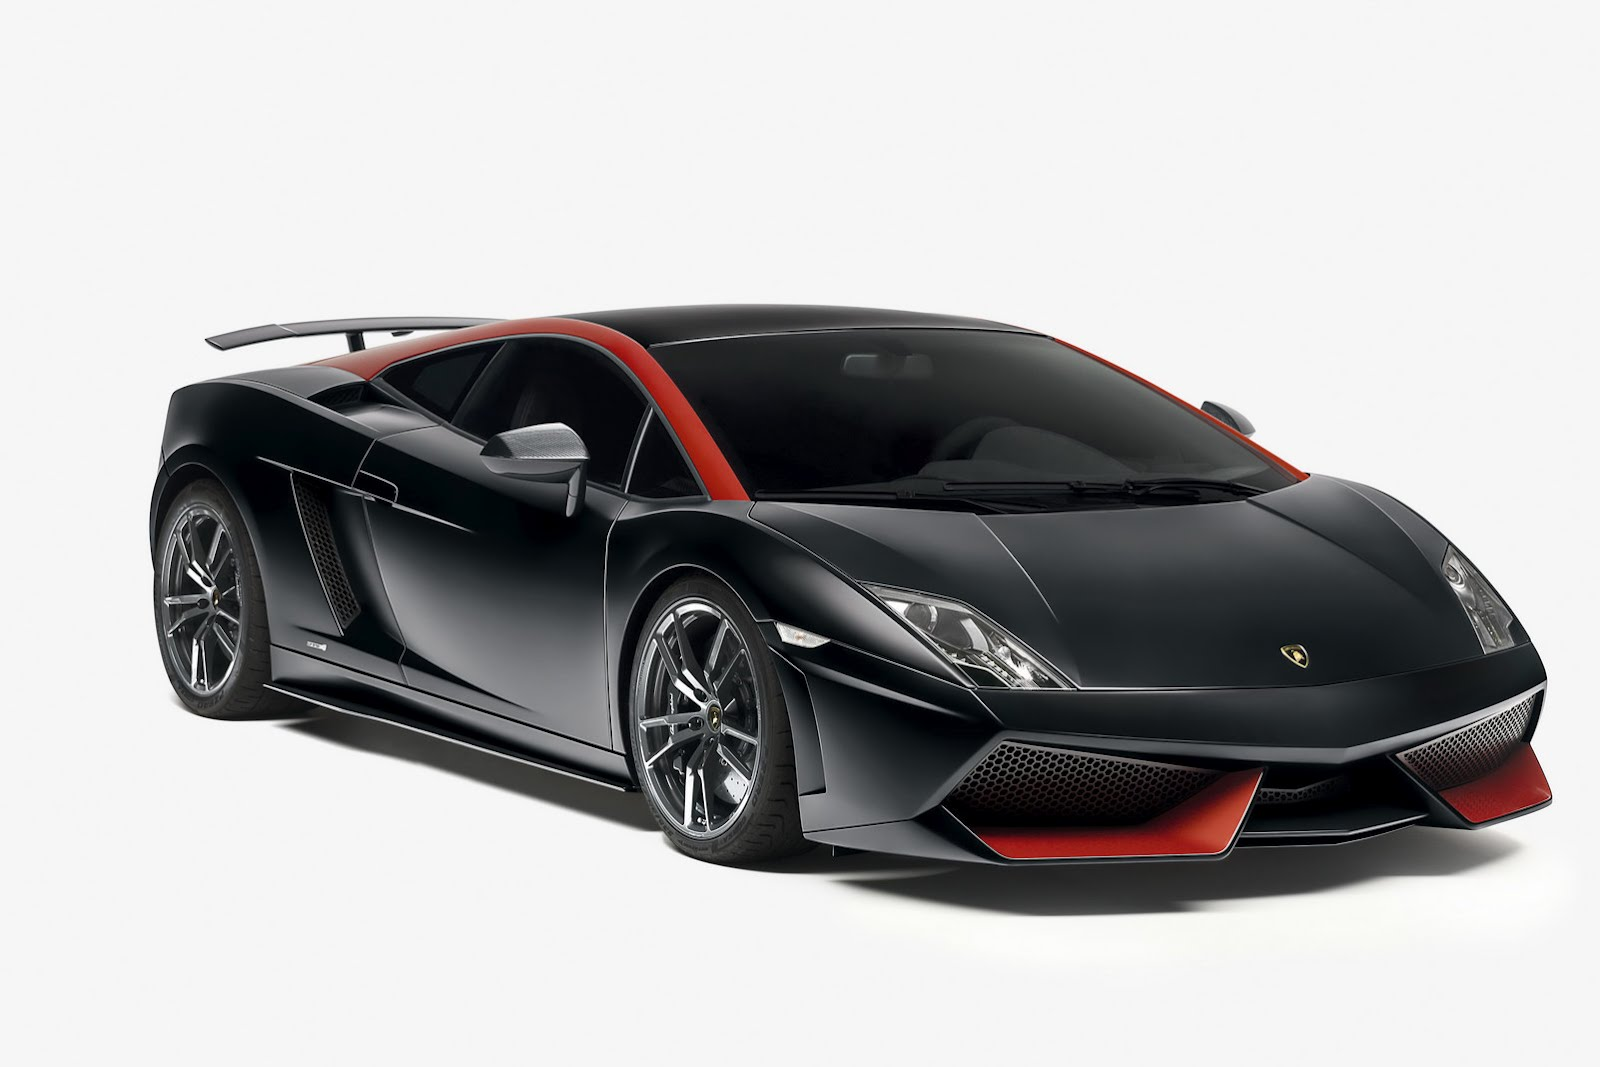 lamborghini 2013 Facelifts Gallardo LP 560-4 that Also Gains New image download free